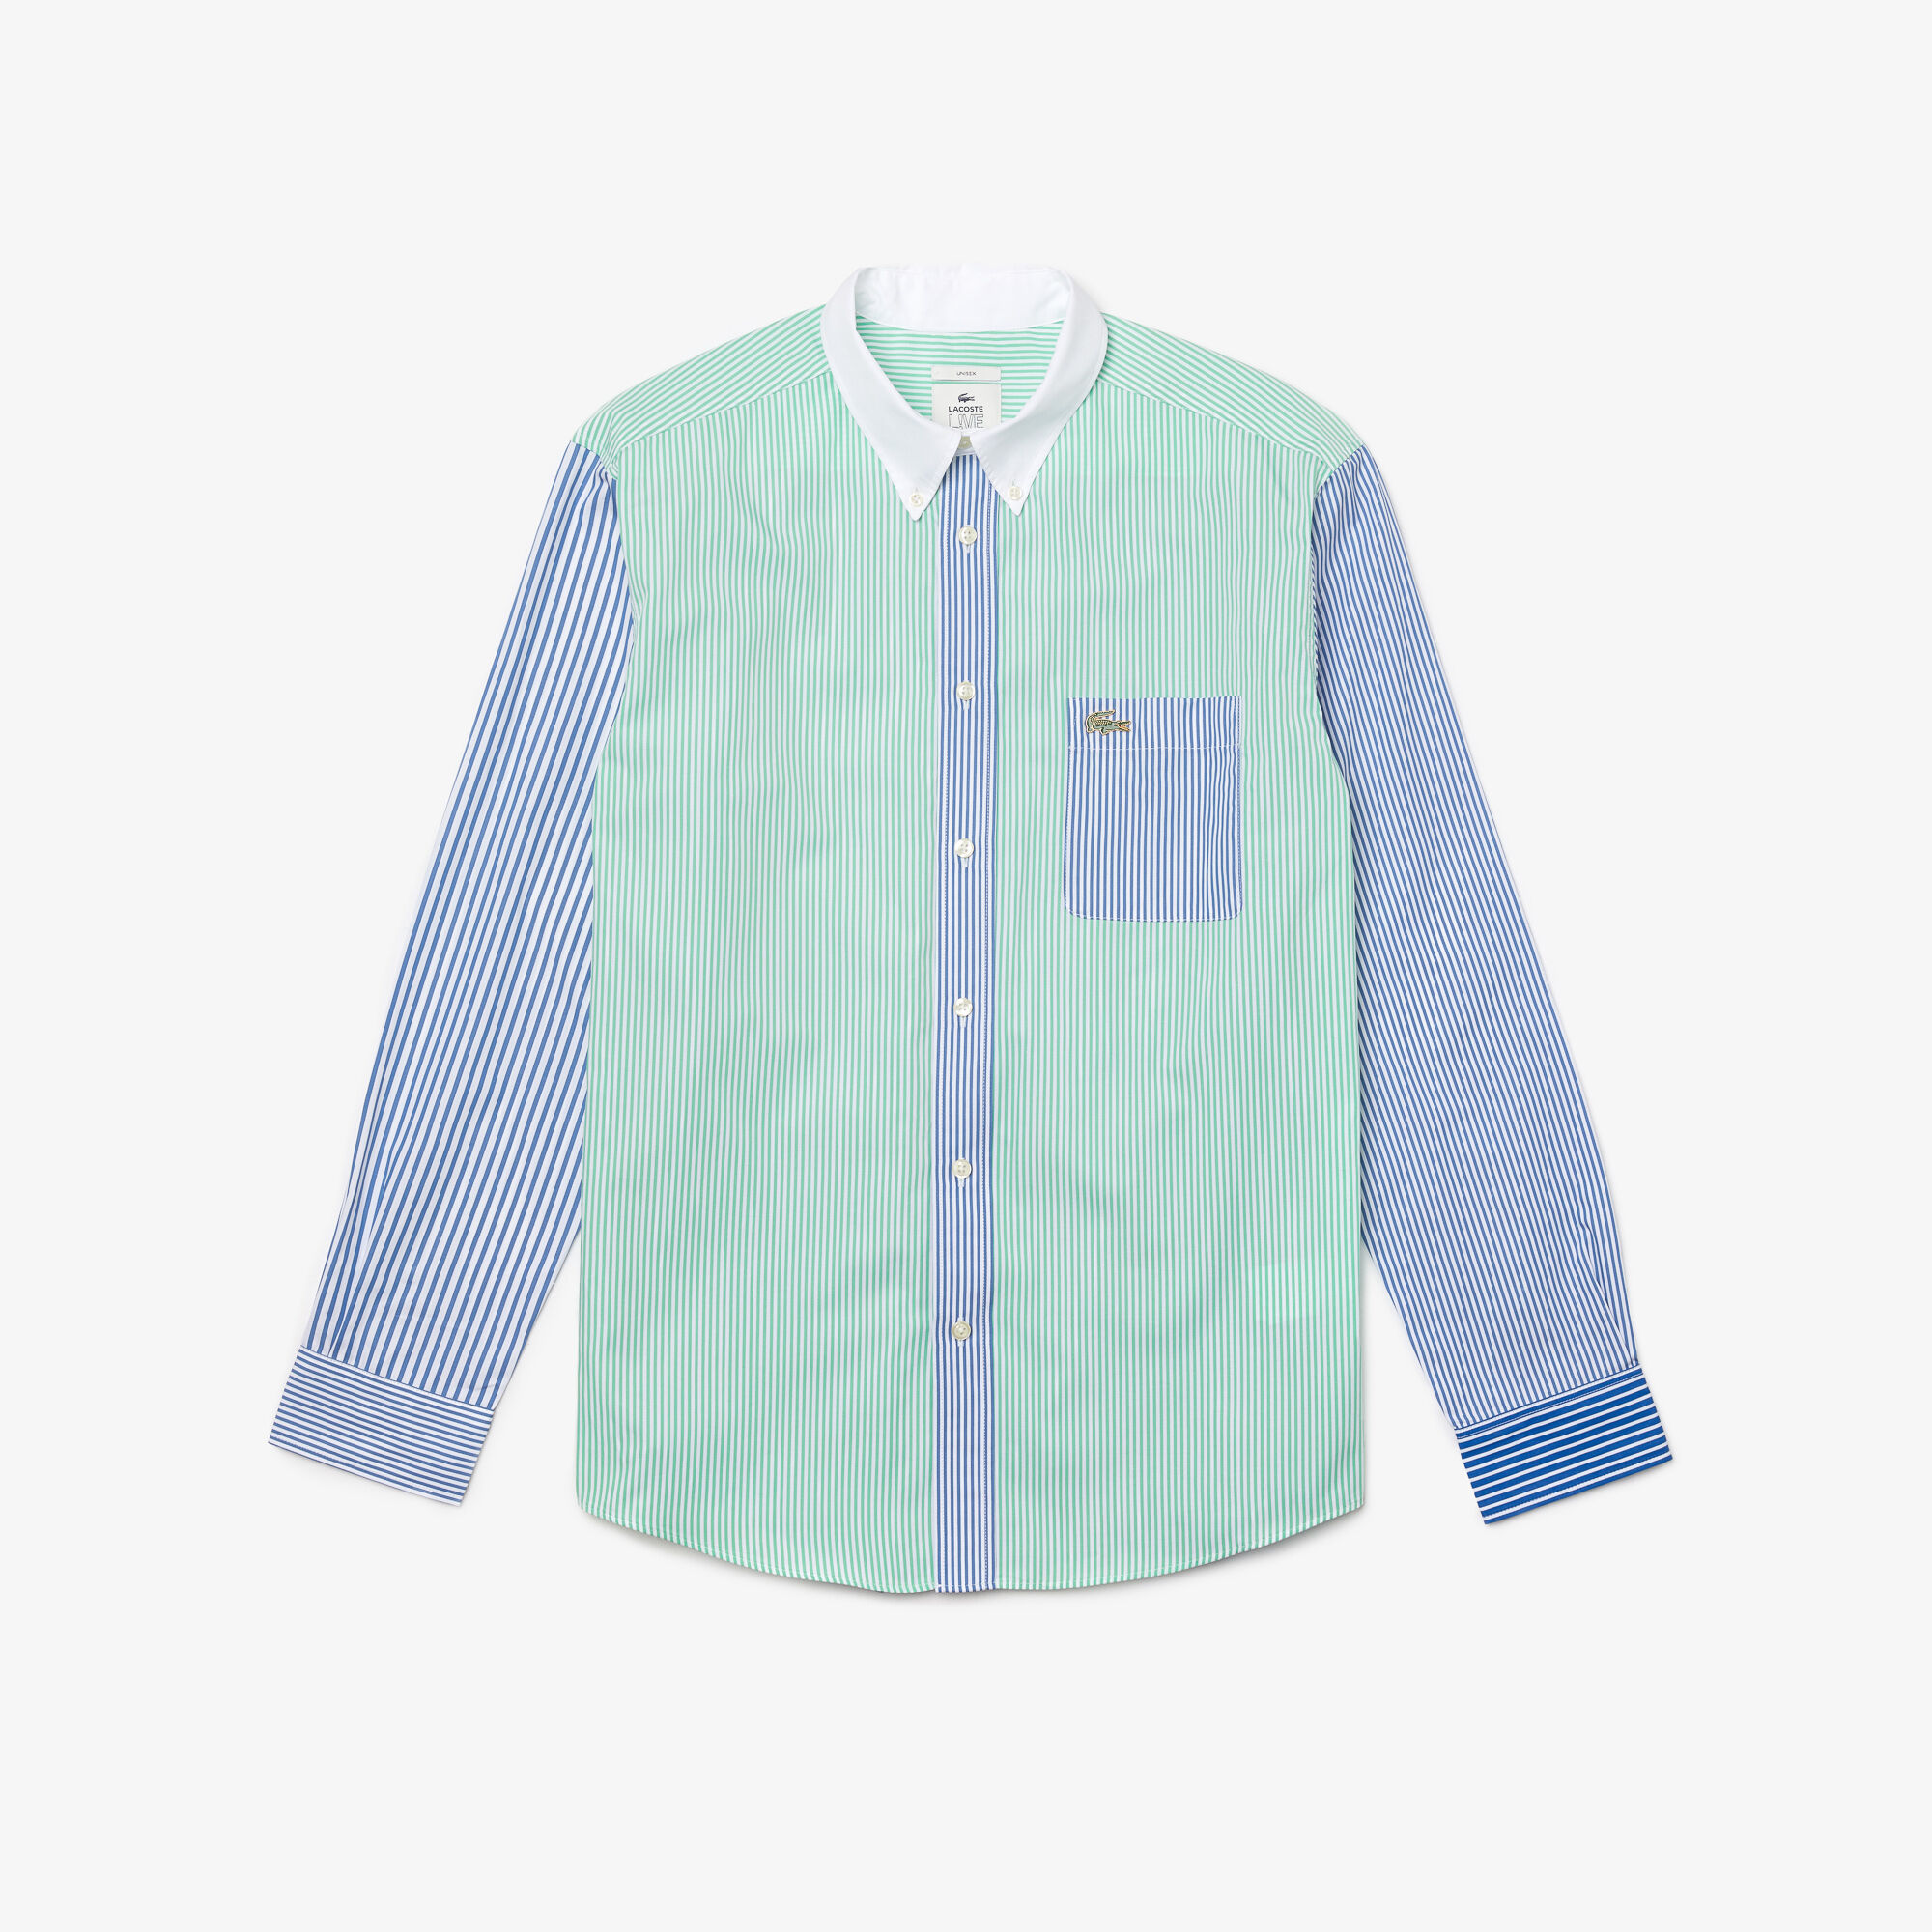 Unisex Lacoste LIVE Relaxed Fit Striped Cotton Shirt